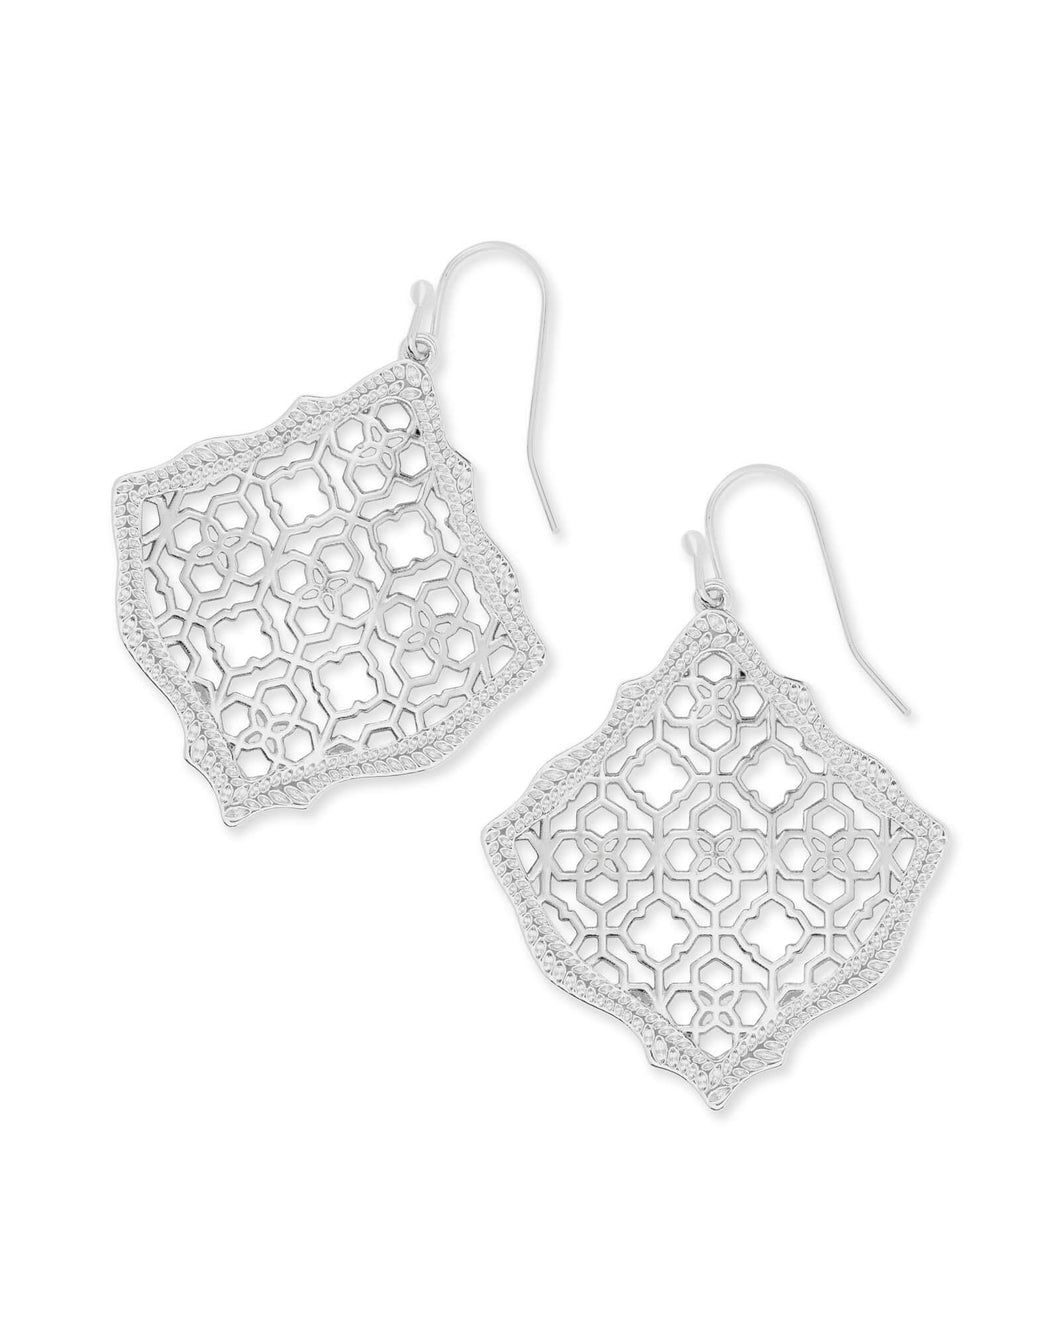 Kirsten Earrings